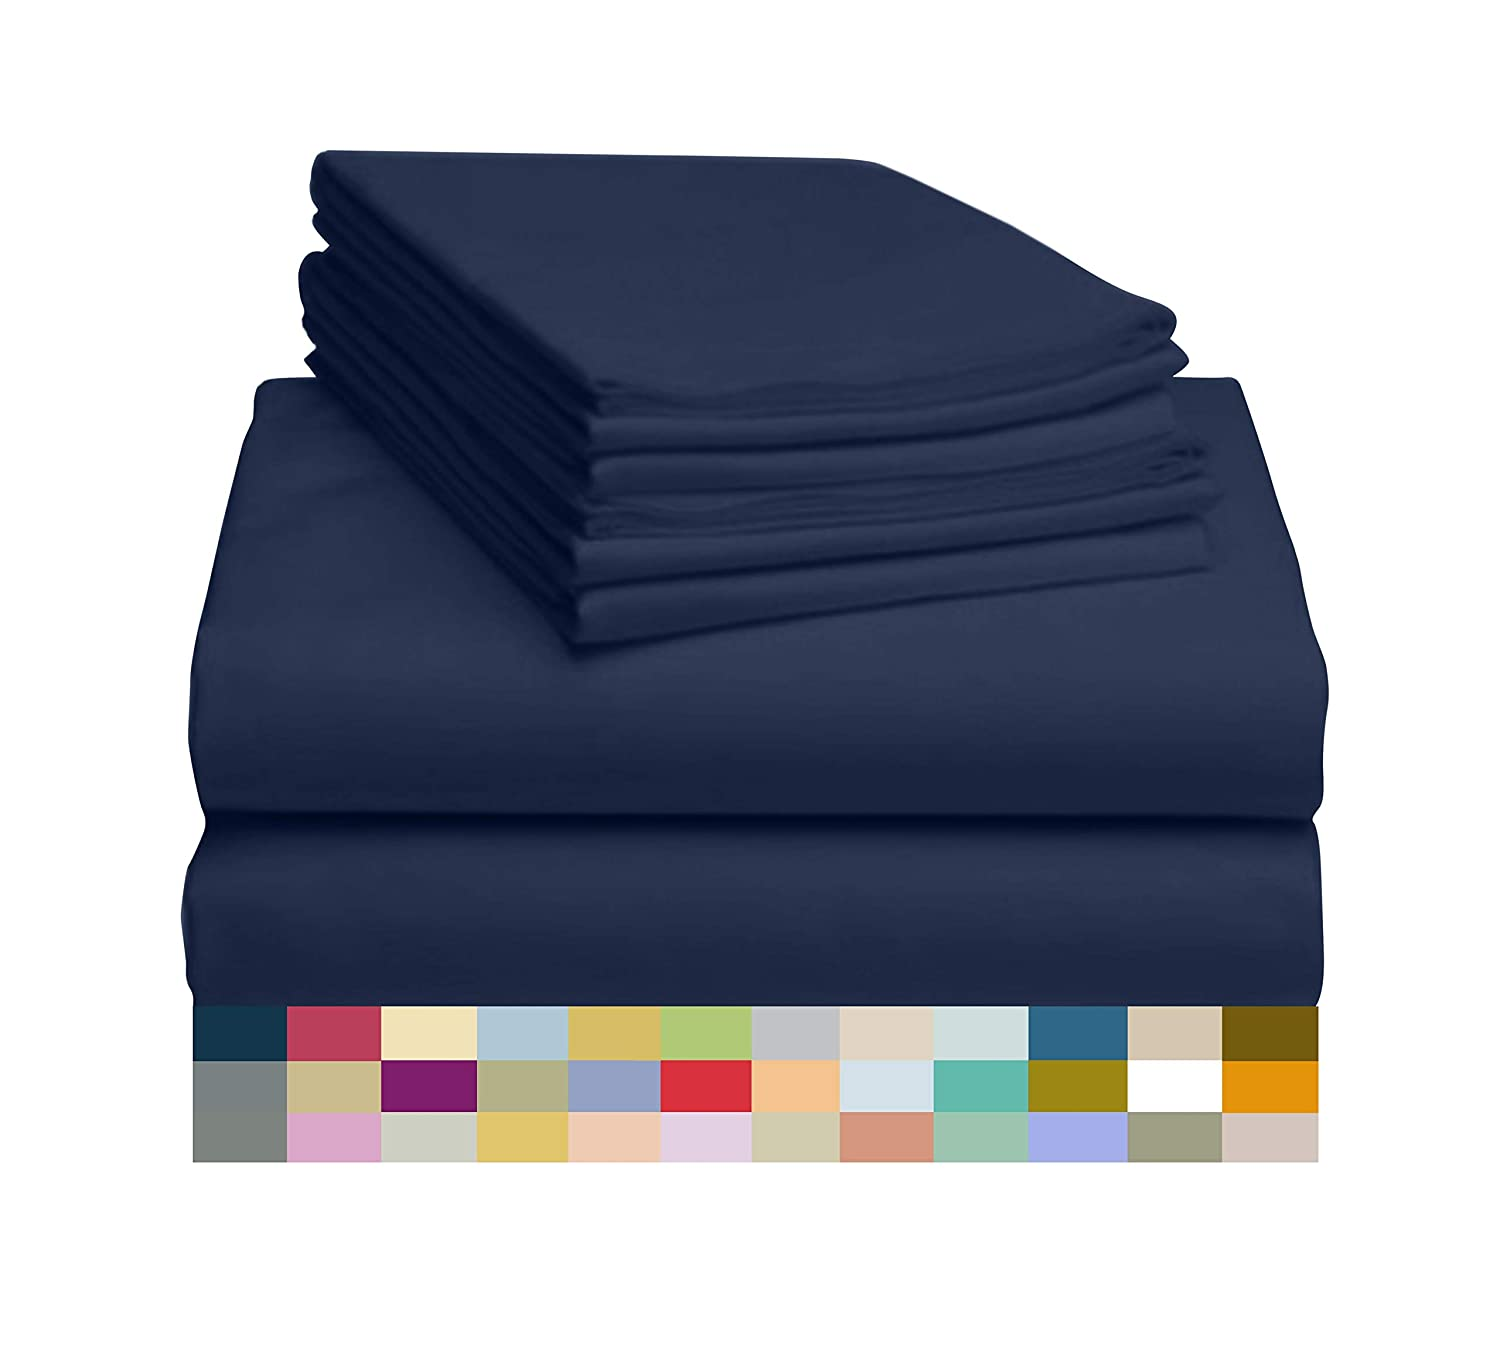 """LuxClub 6 PC Sheet Set Bamboo Sheets Deep Pockets 18"""" Eco Friendly Wrinkle Free Sheets Hypoallergenic Anti-Bacteria Machine Washable Hotel Bedding Silky Soft - Navy King"""